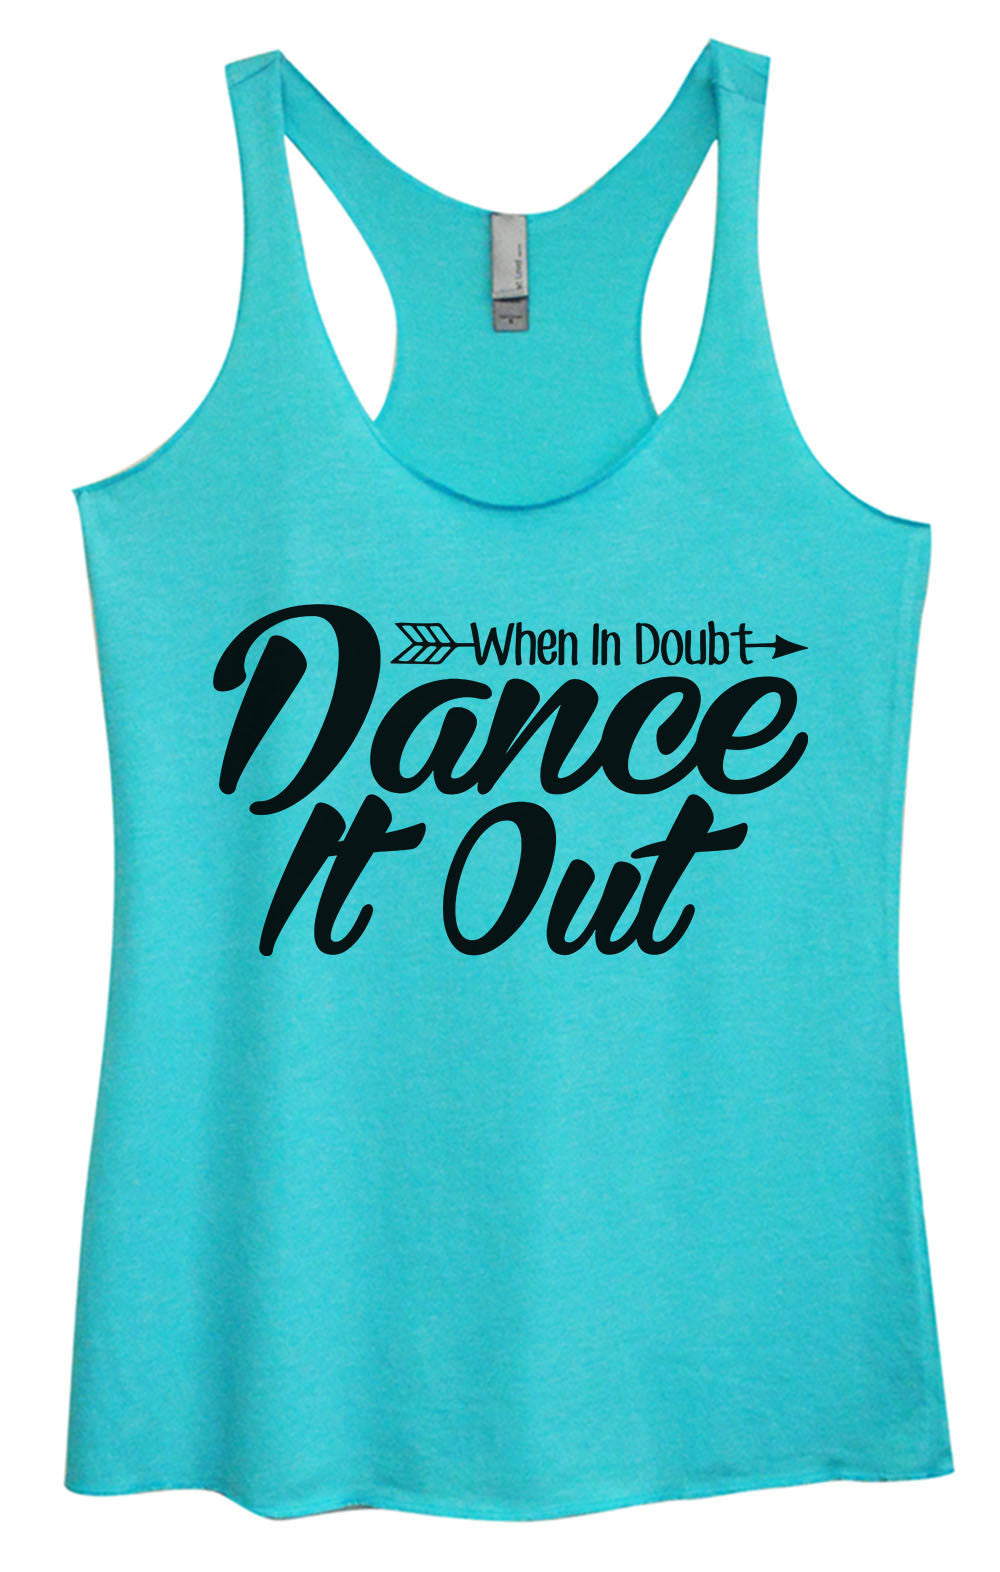 Womens Fashion Triblend Tank Top - When In Doubt Dance It Out - Tri-1351 - Funny Shirts Tank Tops Burnouts and Triblends  - 1